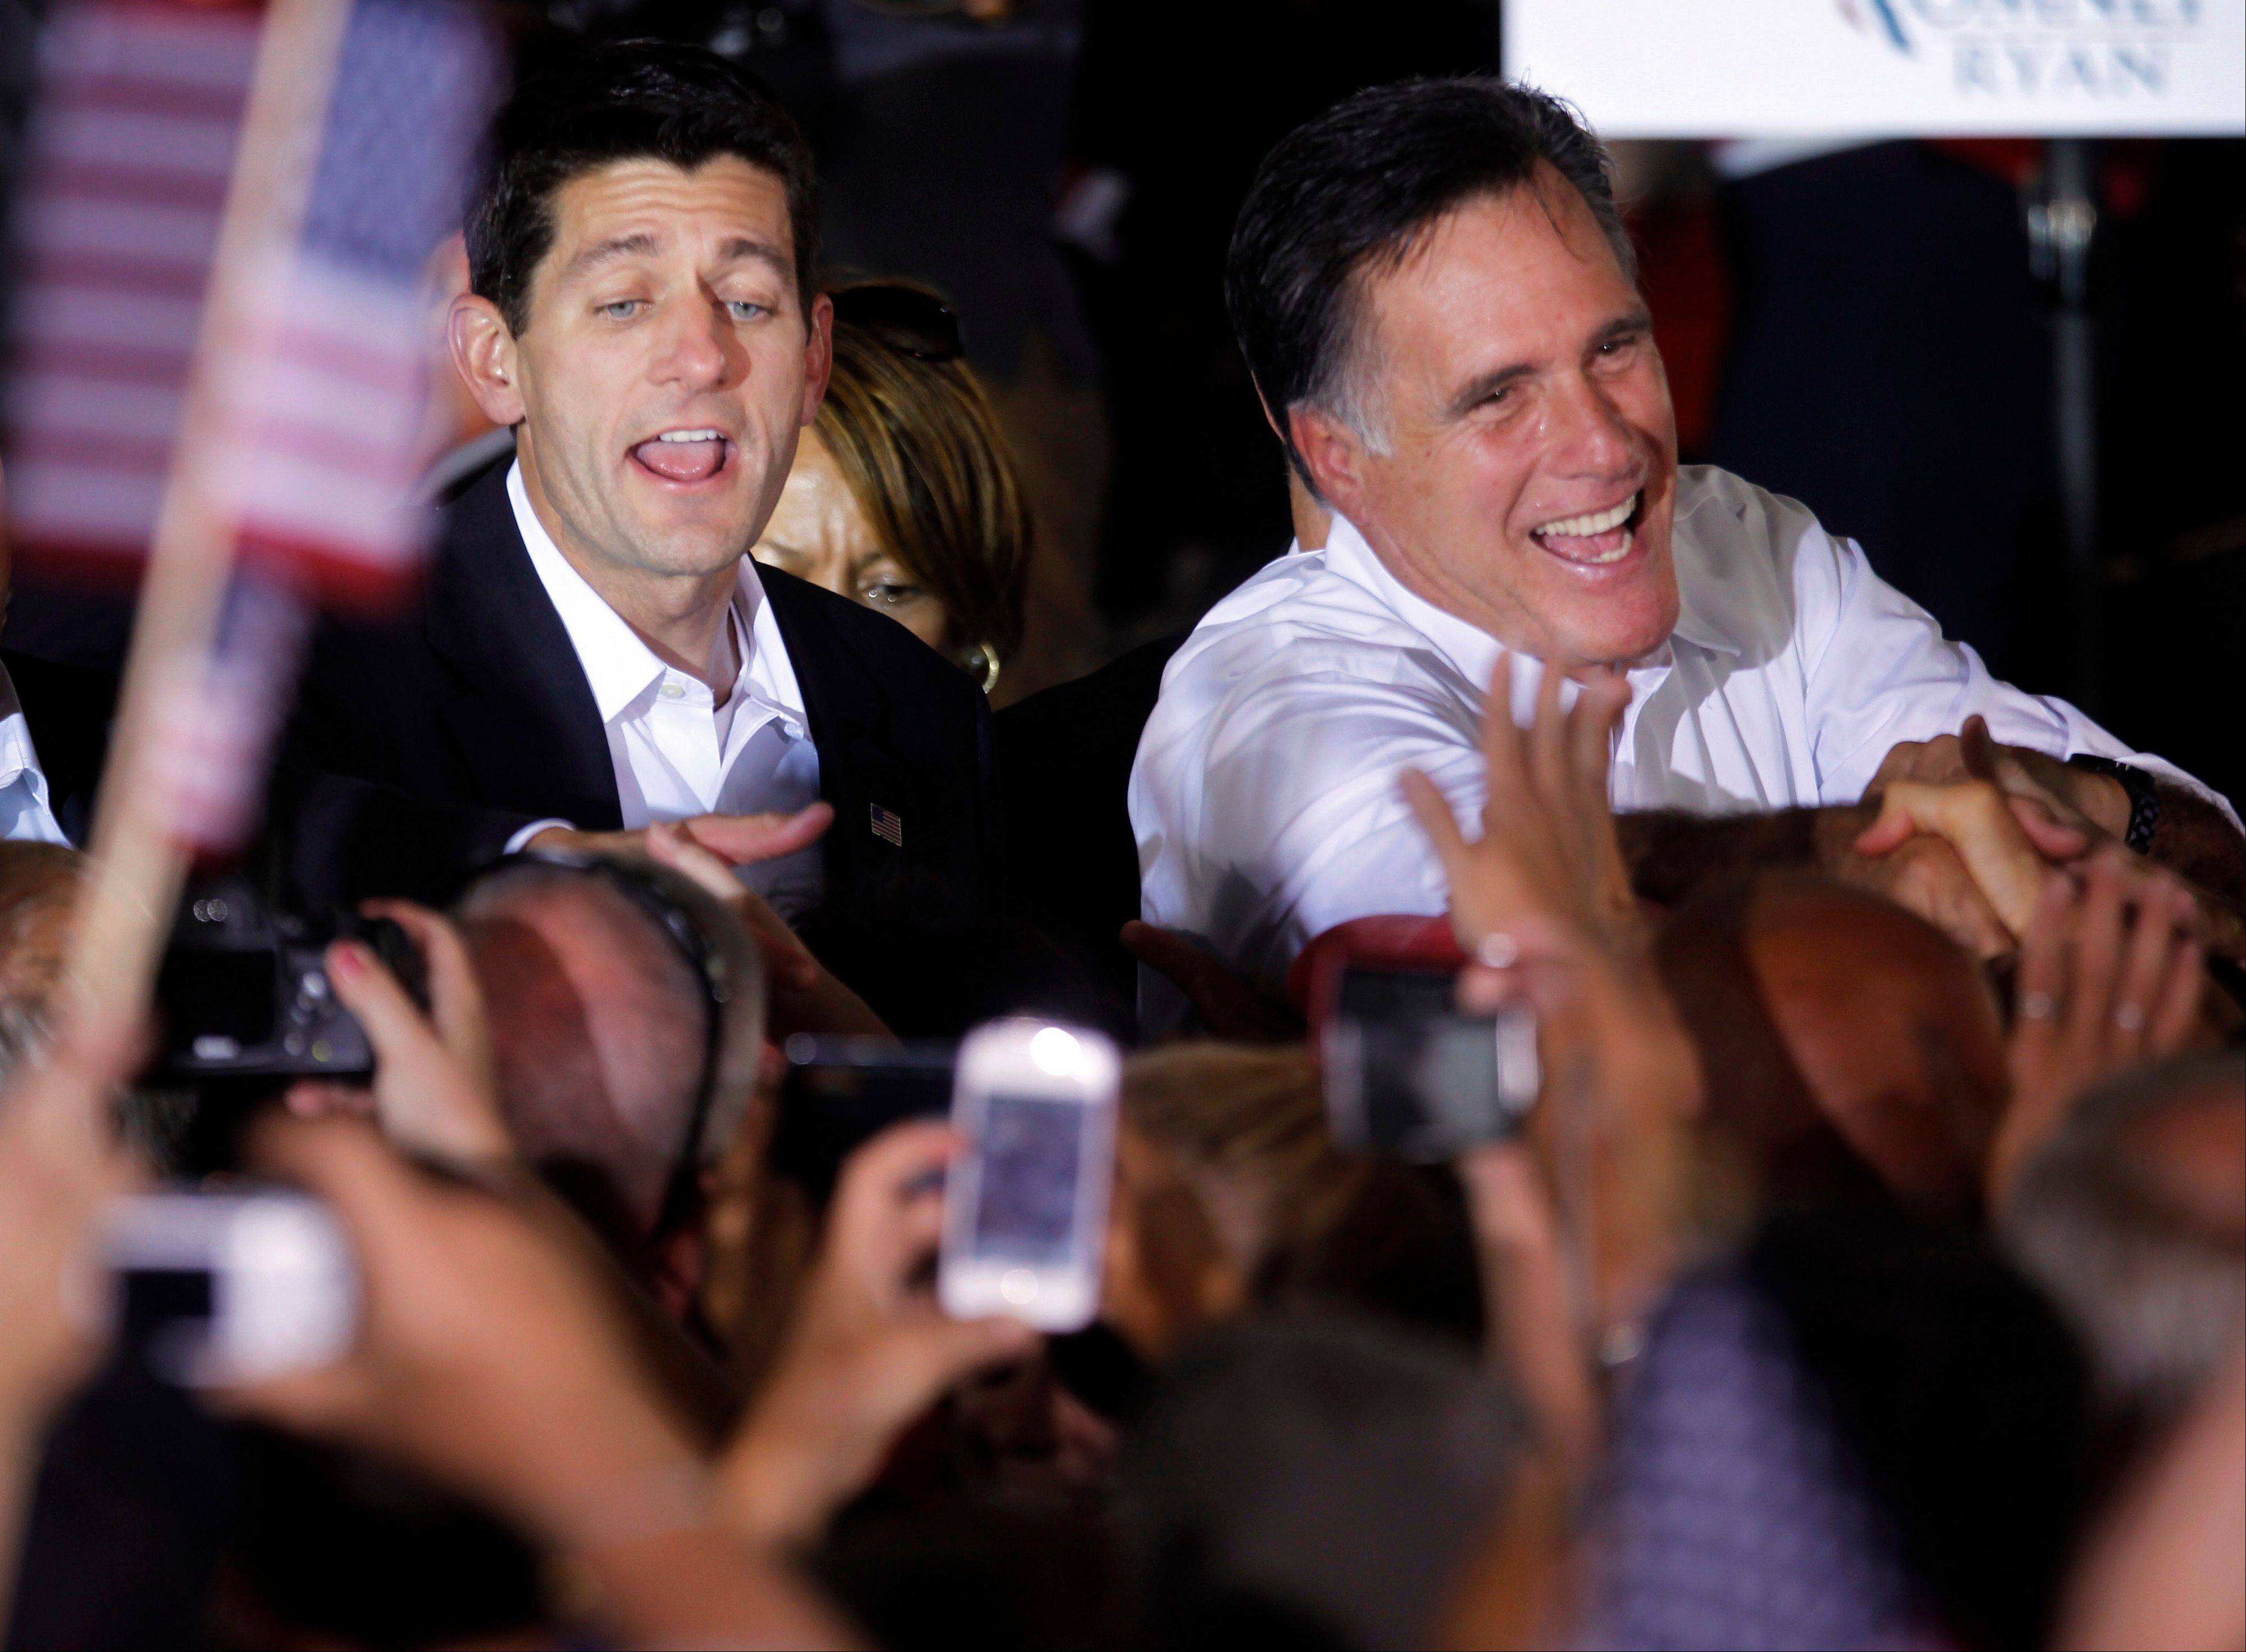 Republican presidential candidate, former Massachusetts Gov. Mitt Romney, right, and his newly announced vice presidential running mate, Rep. Paul Ryan, R-Wis., left, greet supporters Saturday during a campaign rally in Manassas, Va.